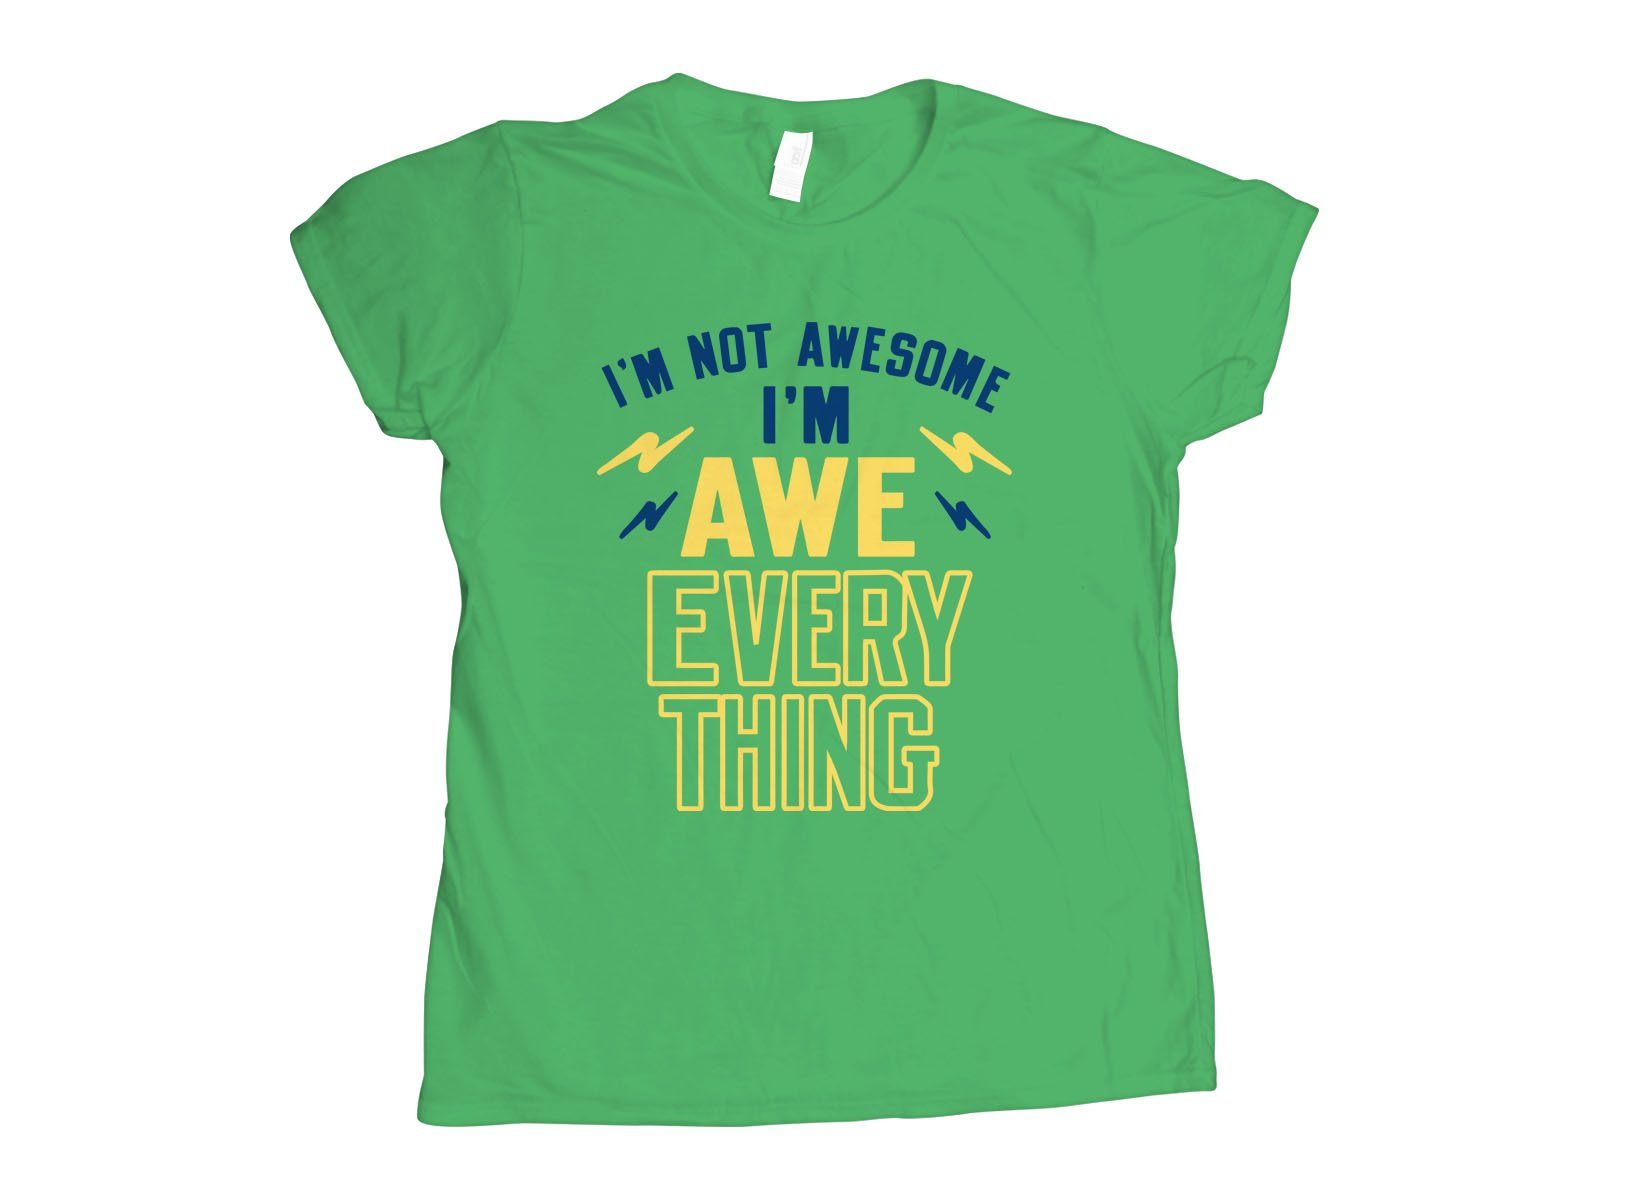 I'm Not Awesome, I'm Awe-Everything on Womens T-Shirt